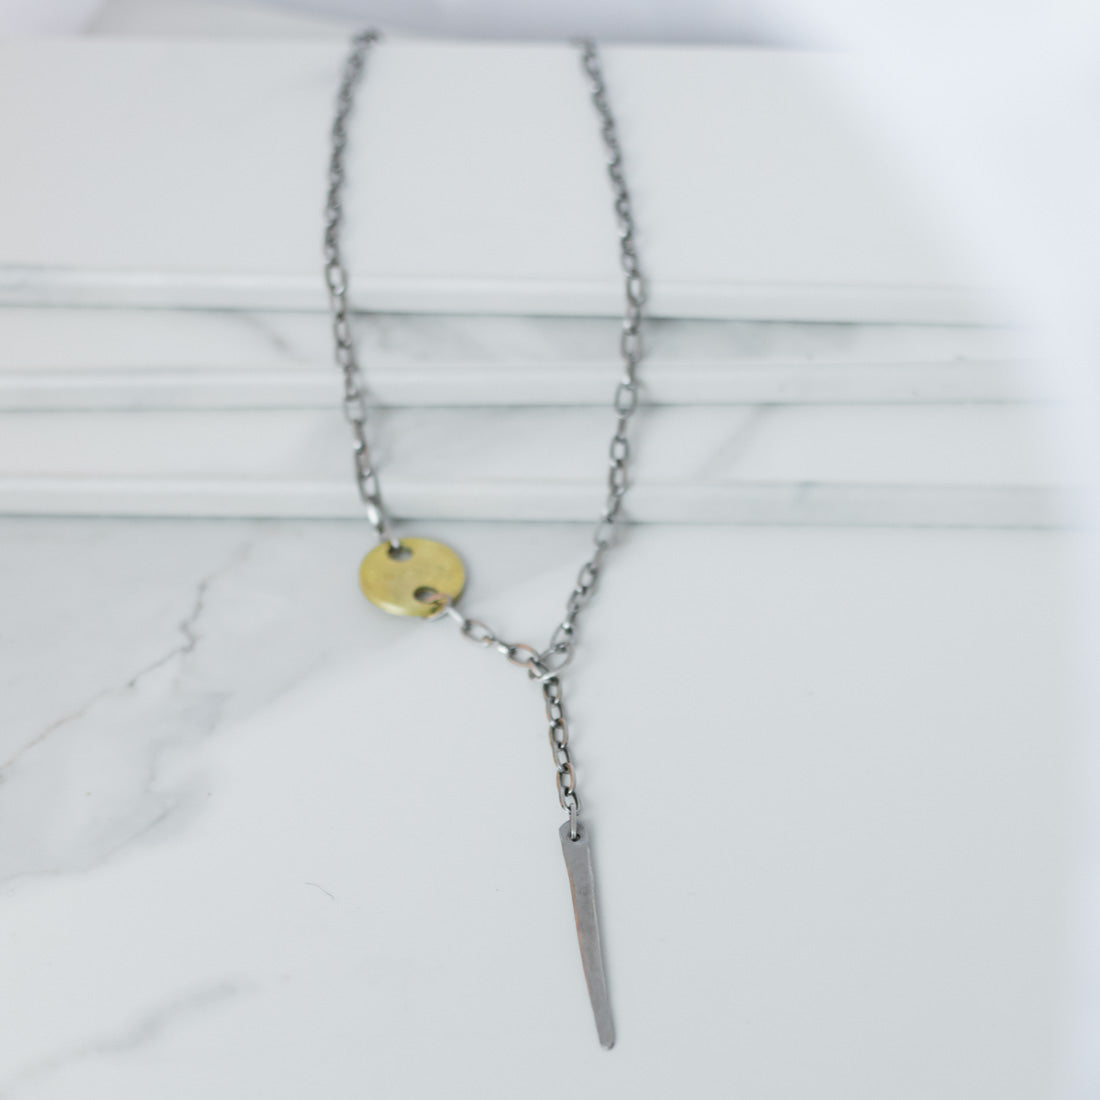 TINE Necklace - Twisted Silver Jewelry